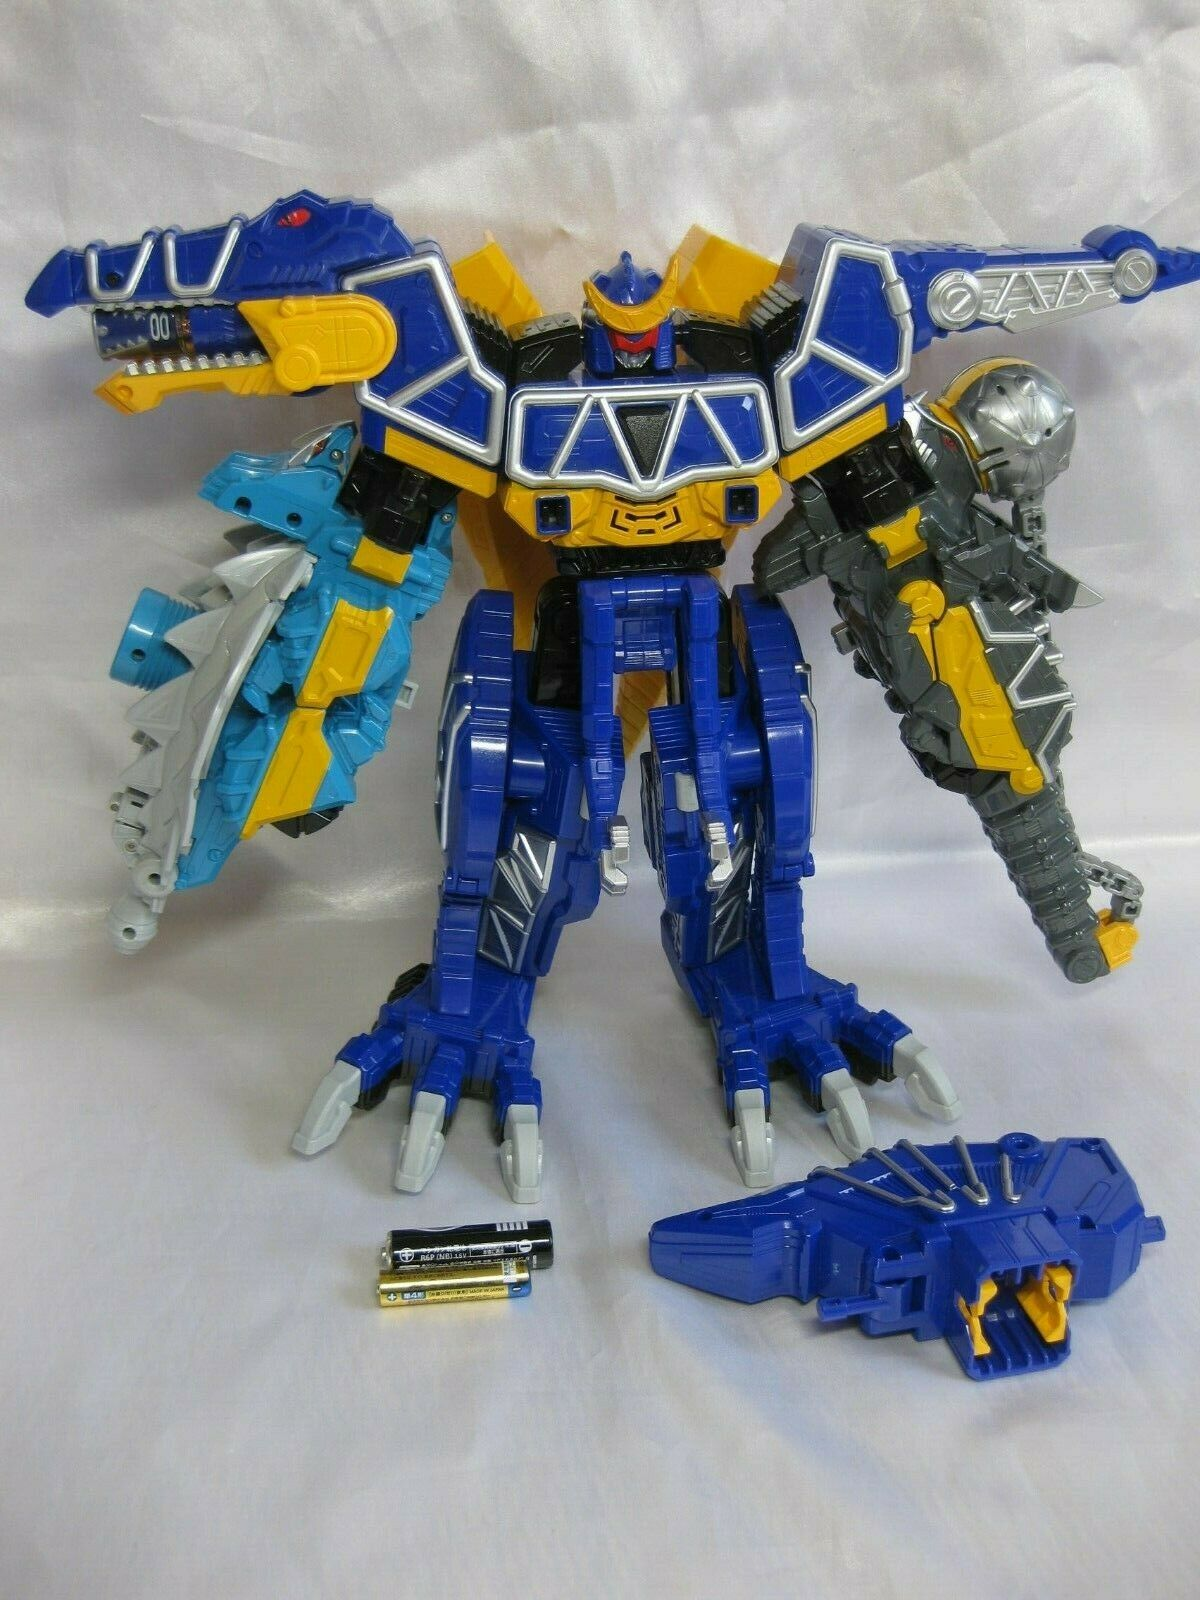 POWER RANGERS Dino Charge Kyoryuger Spino Zord tobaspino Spino charge Megazord